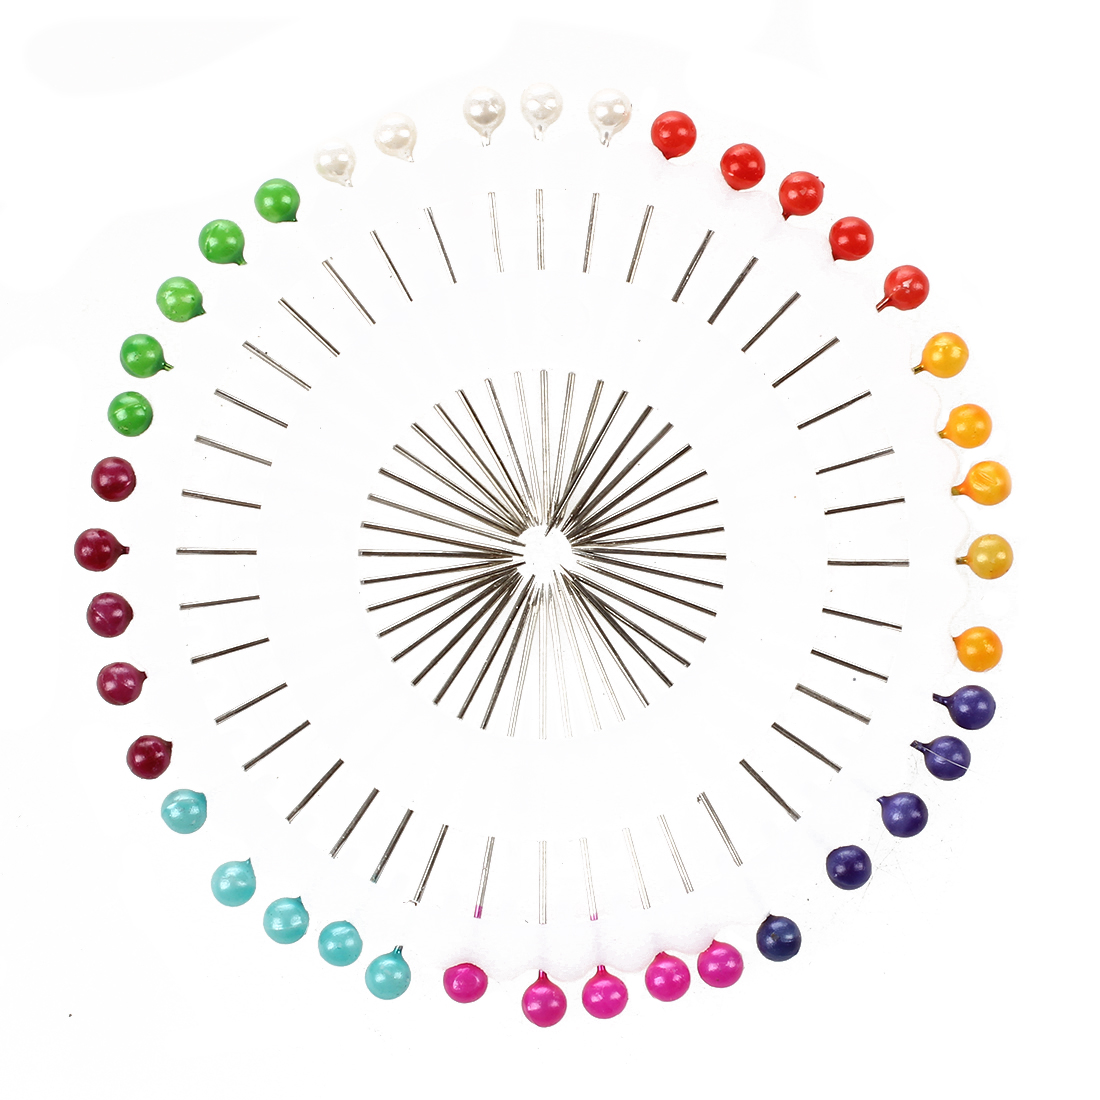 Craft Pin Wheel - 40 Pins - Ball Shaped Pin Heads. Sewing / Quilting Pins.